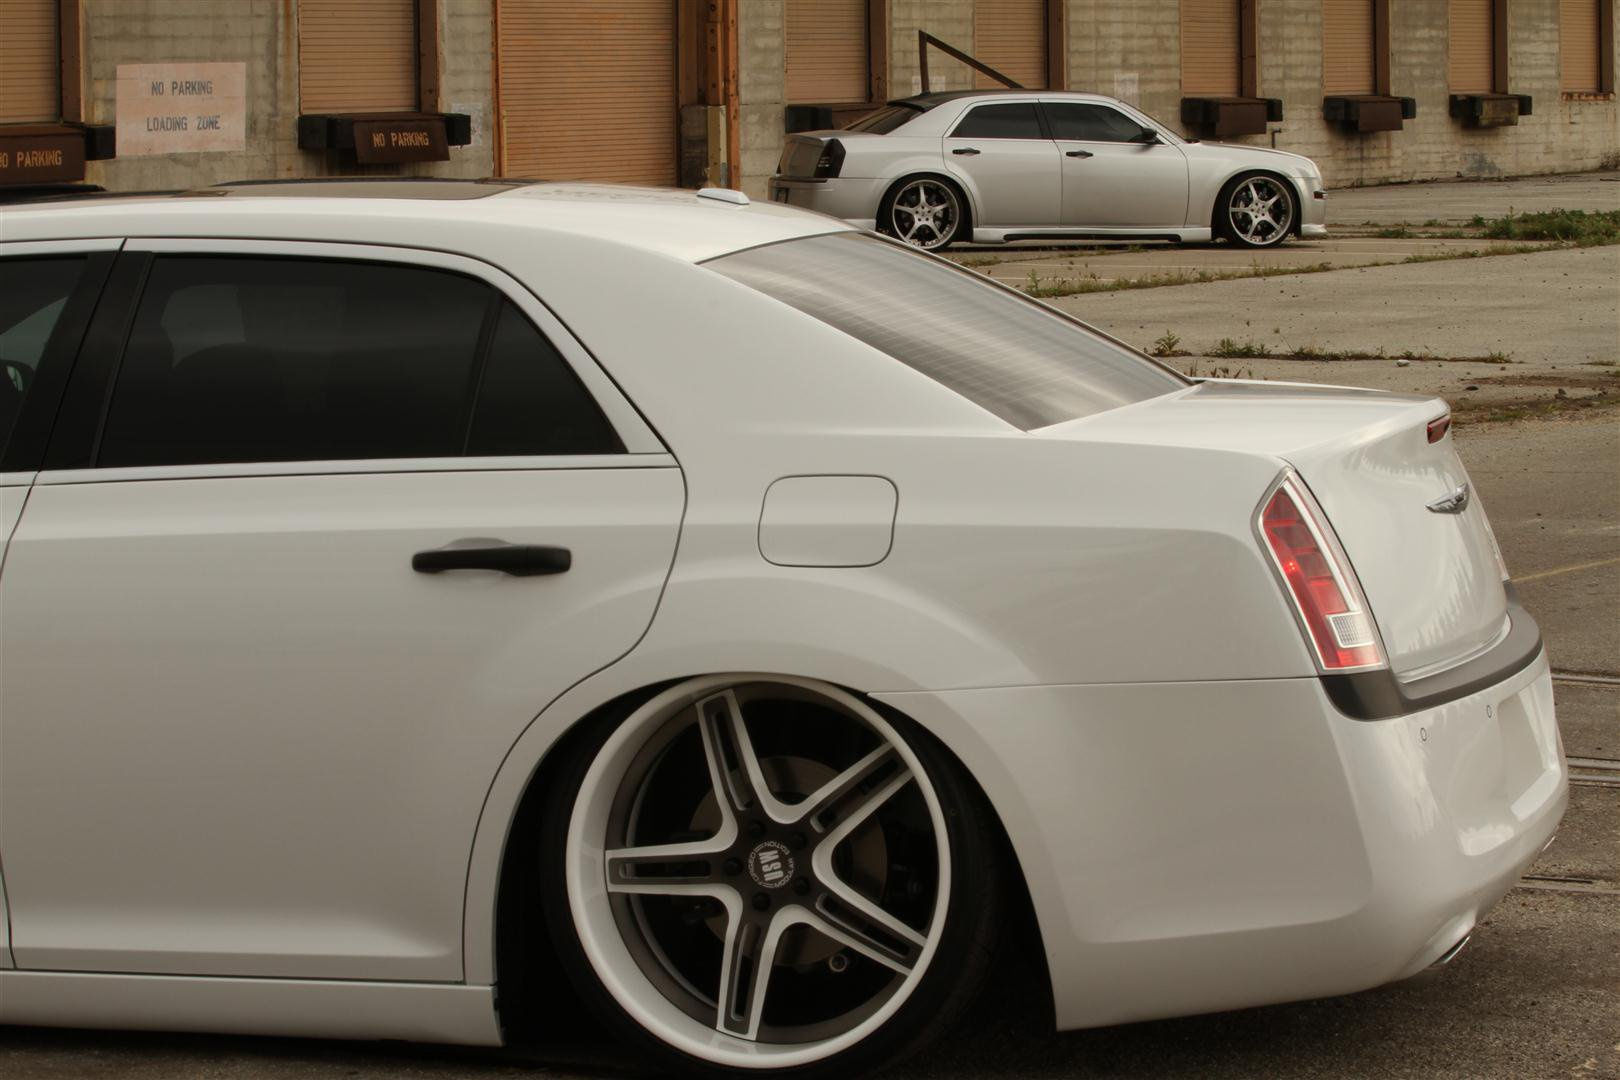 2011 Chrysler 300 | Chrysler 300